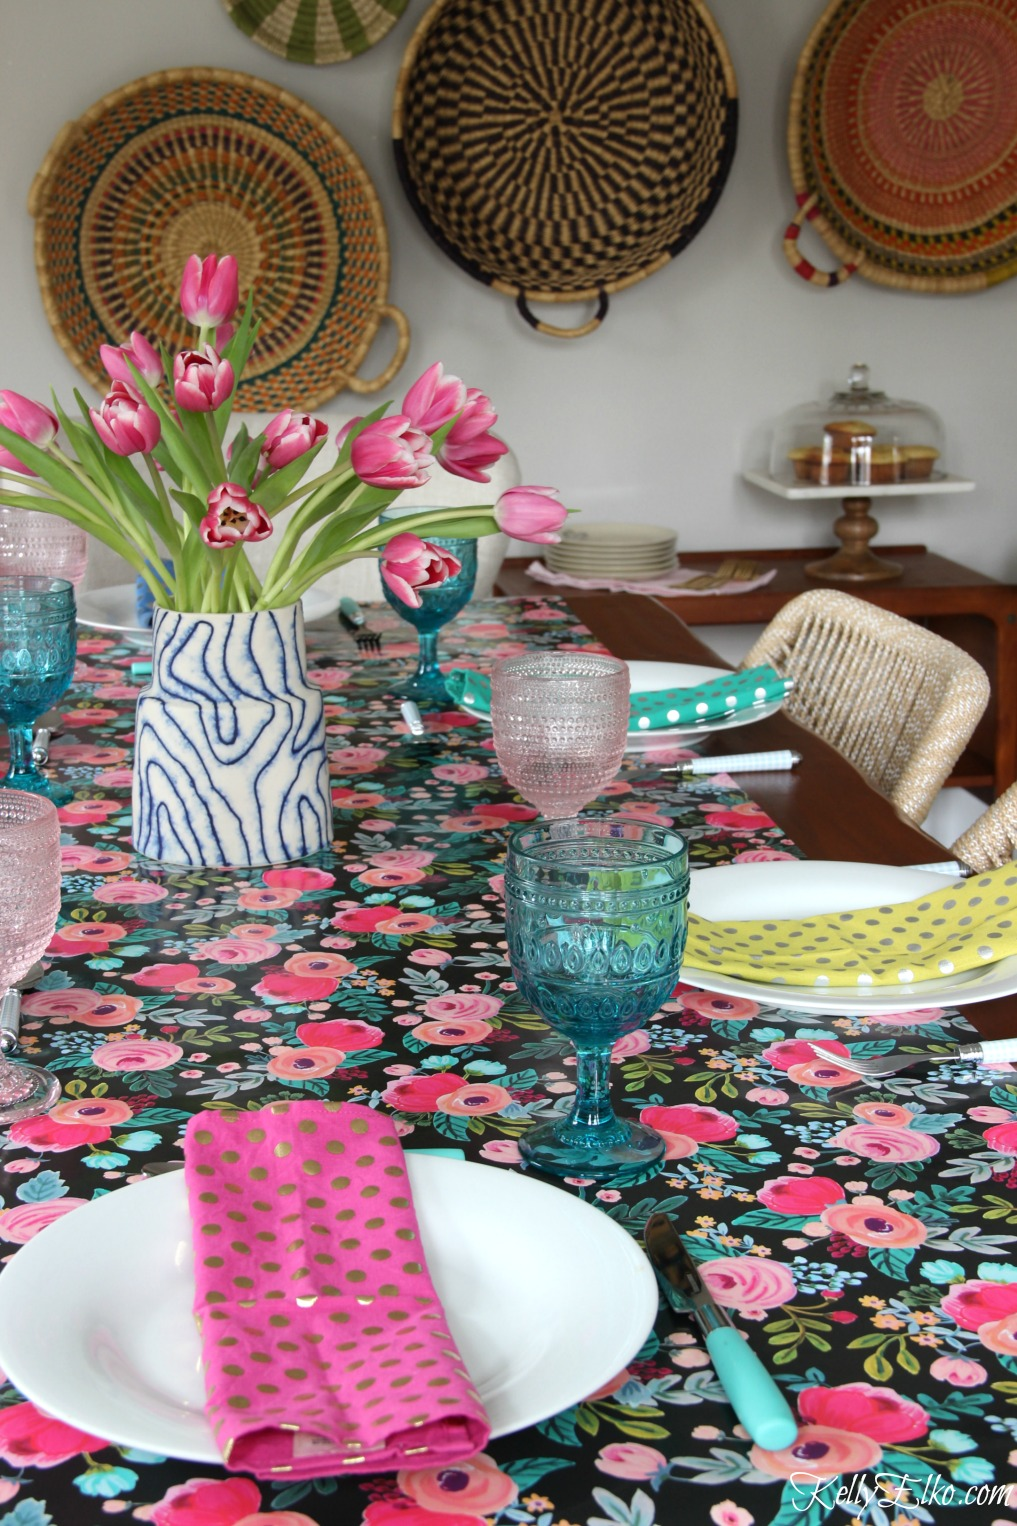 Beautiful spring table - love the floral table runner, blue and pink glasses and colorful napkins kellyelko.com